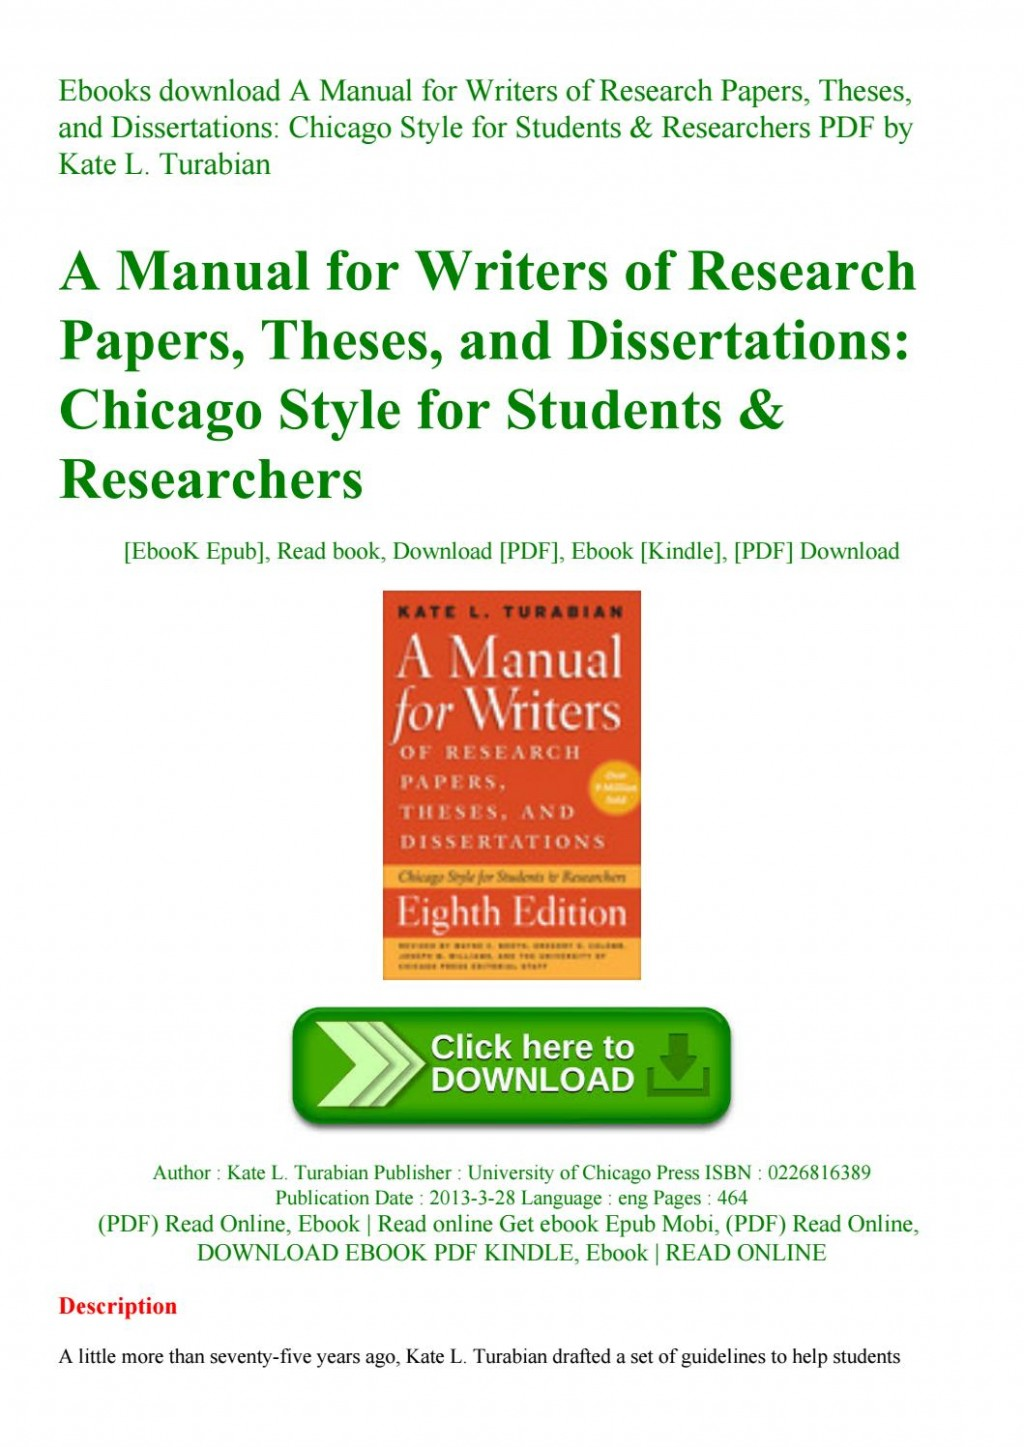 018 Page 1 Research Paper Manual For Writers Of Papers Theses And Sensational A Dissertations Eighth Edition Pdf 9th 8th Large